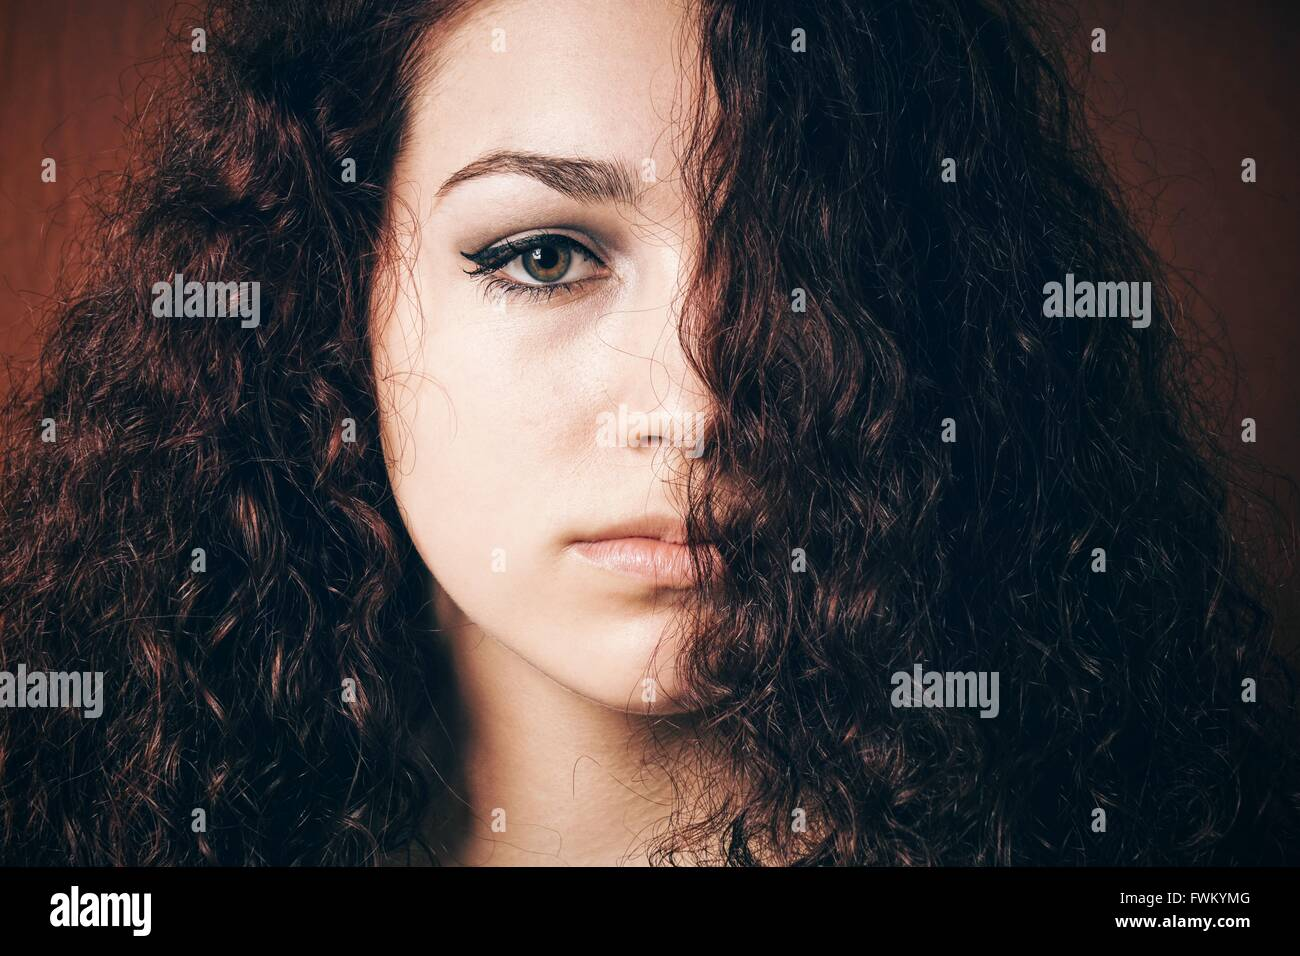 Close-Up Portrait Of Woman With Curly Hair - Stock Image